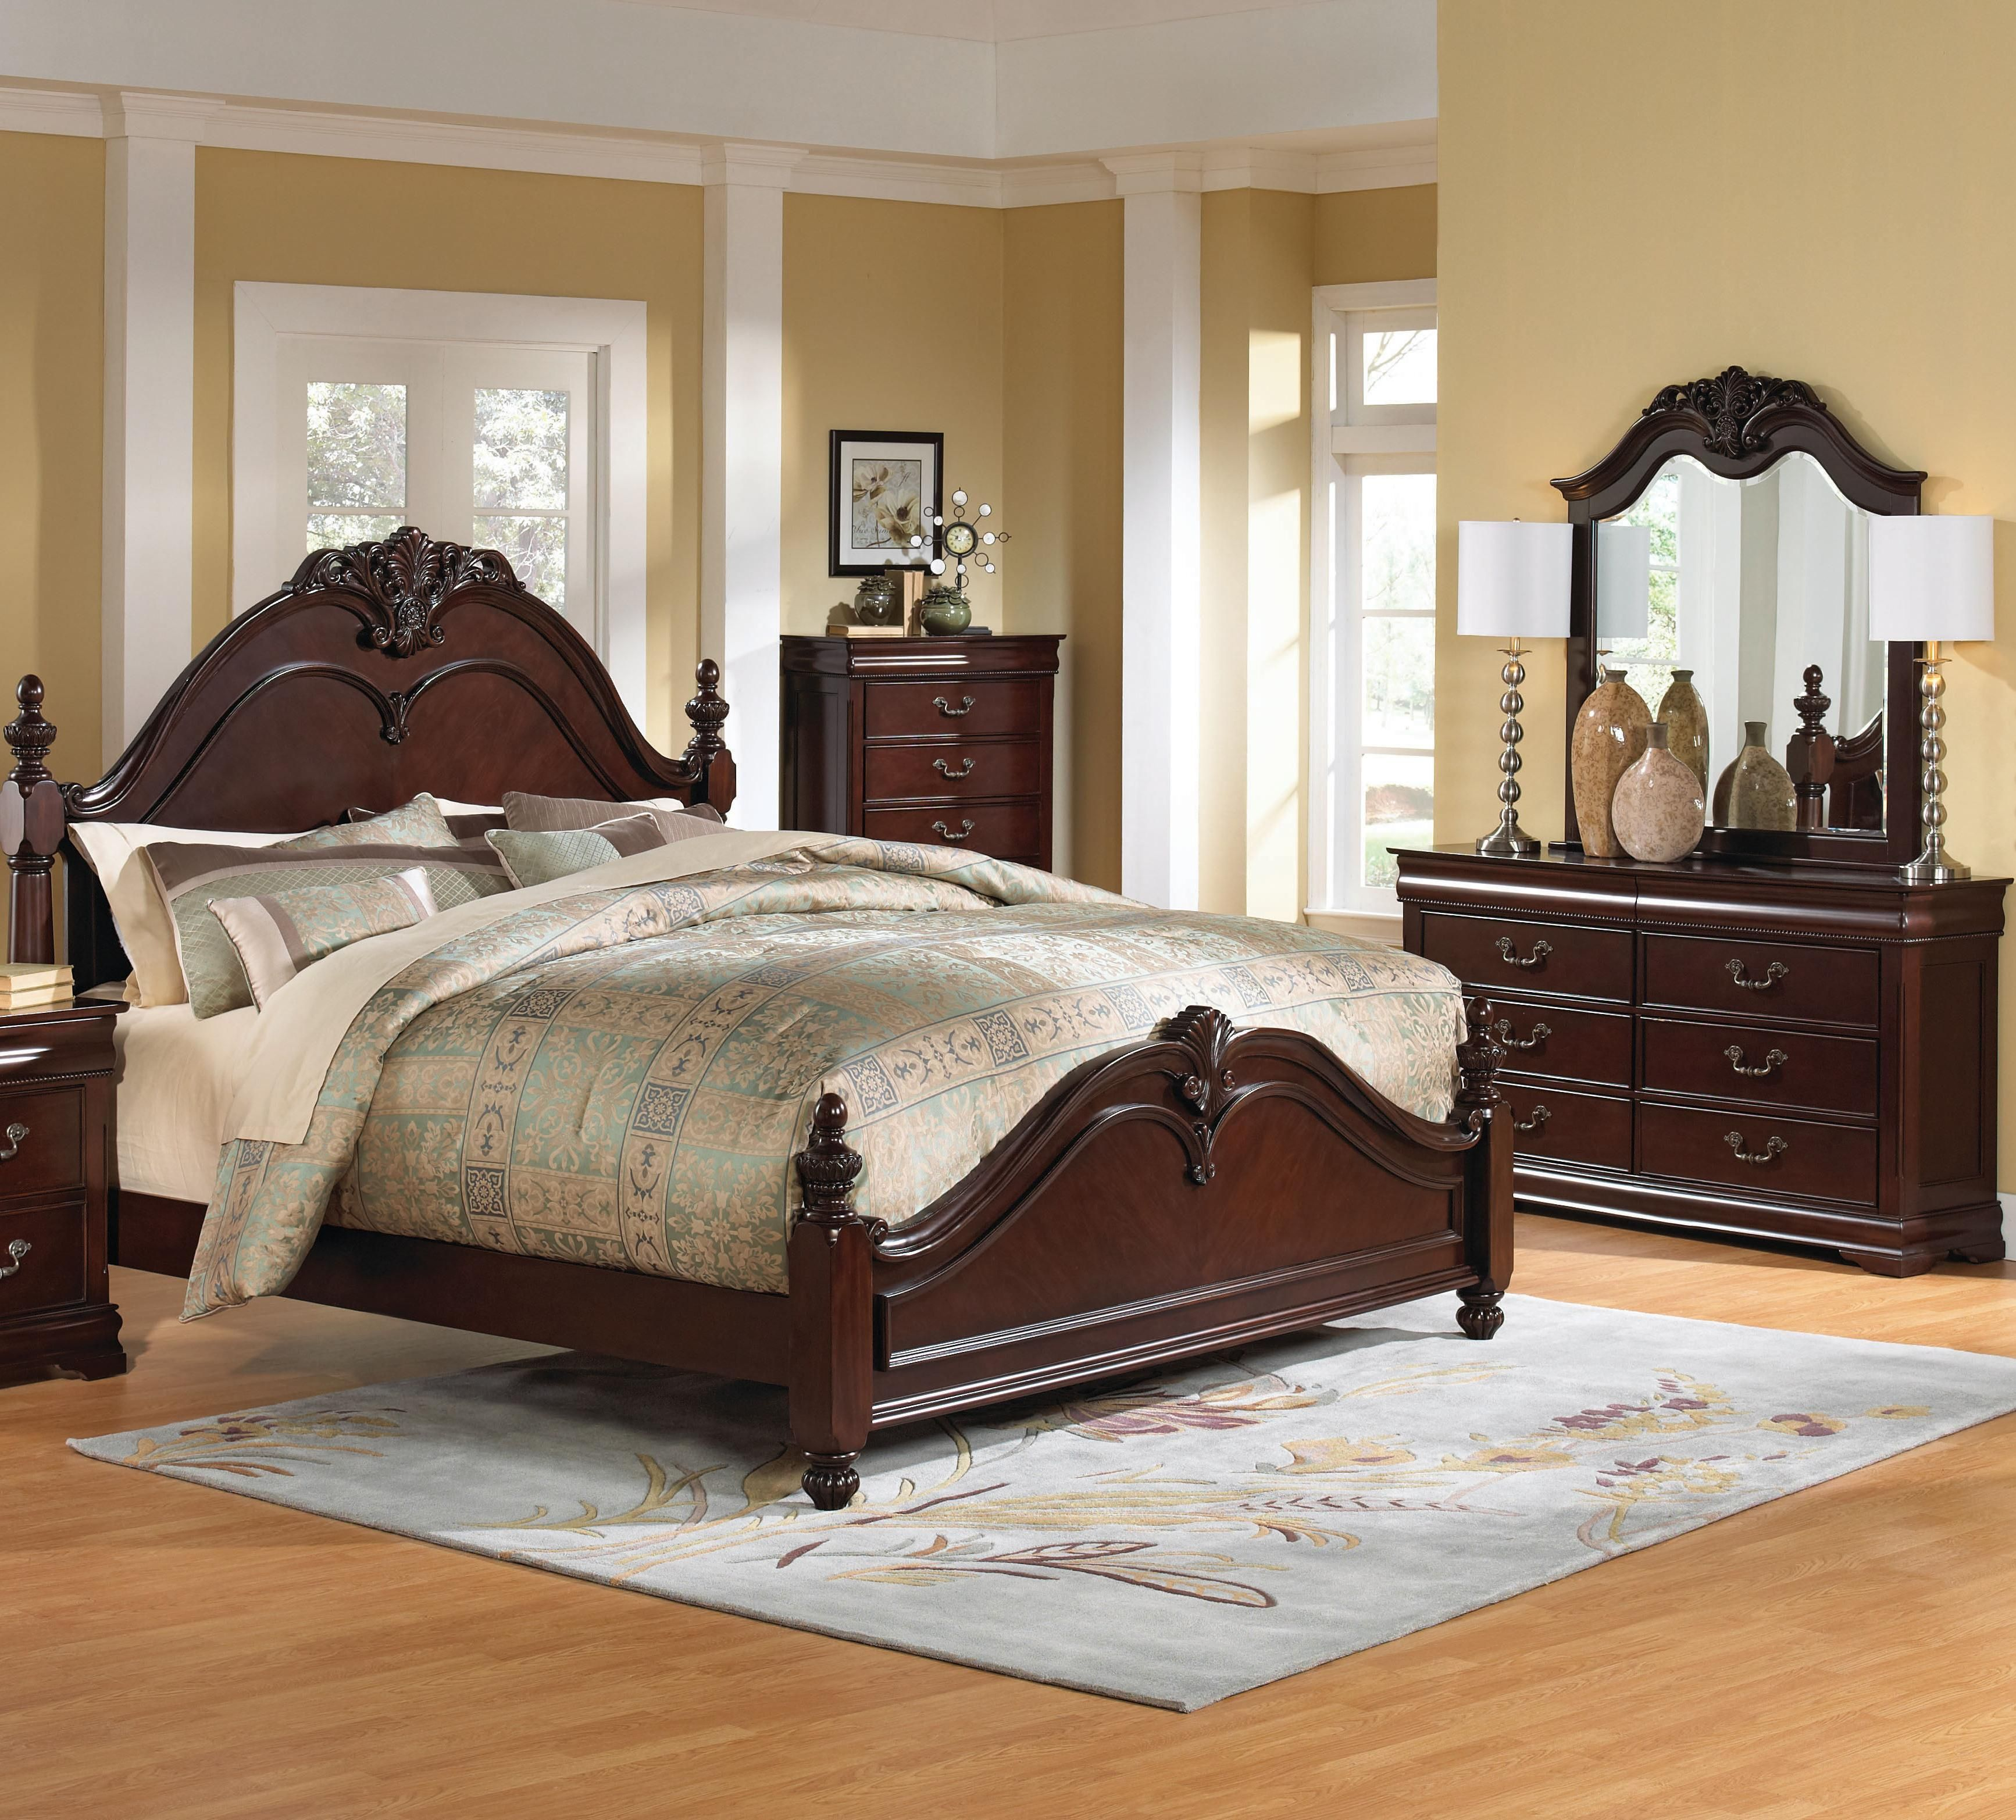 Westchester Queen Bedroom Group By Standard Furniture Easylife Furniture Bedroom Group Los